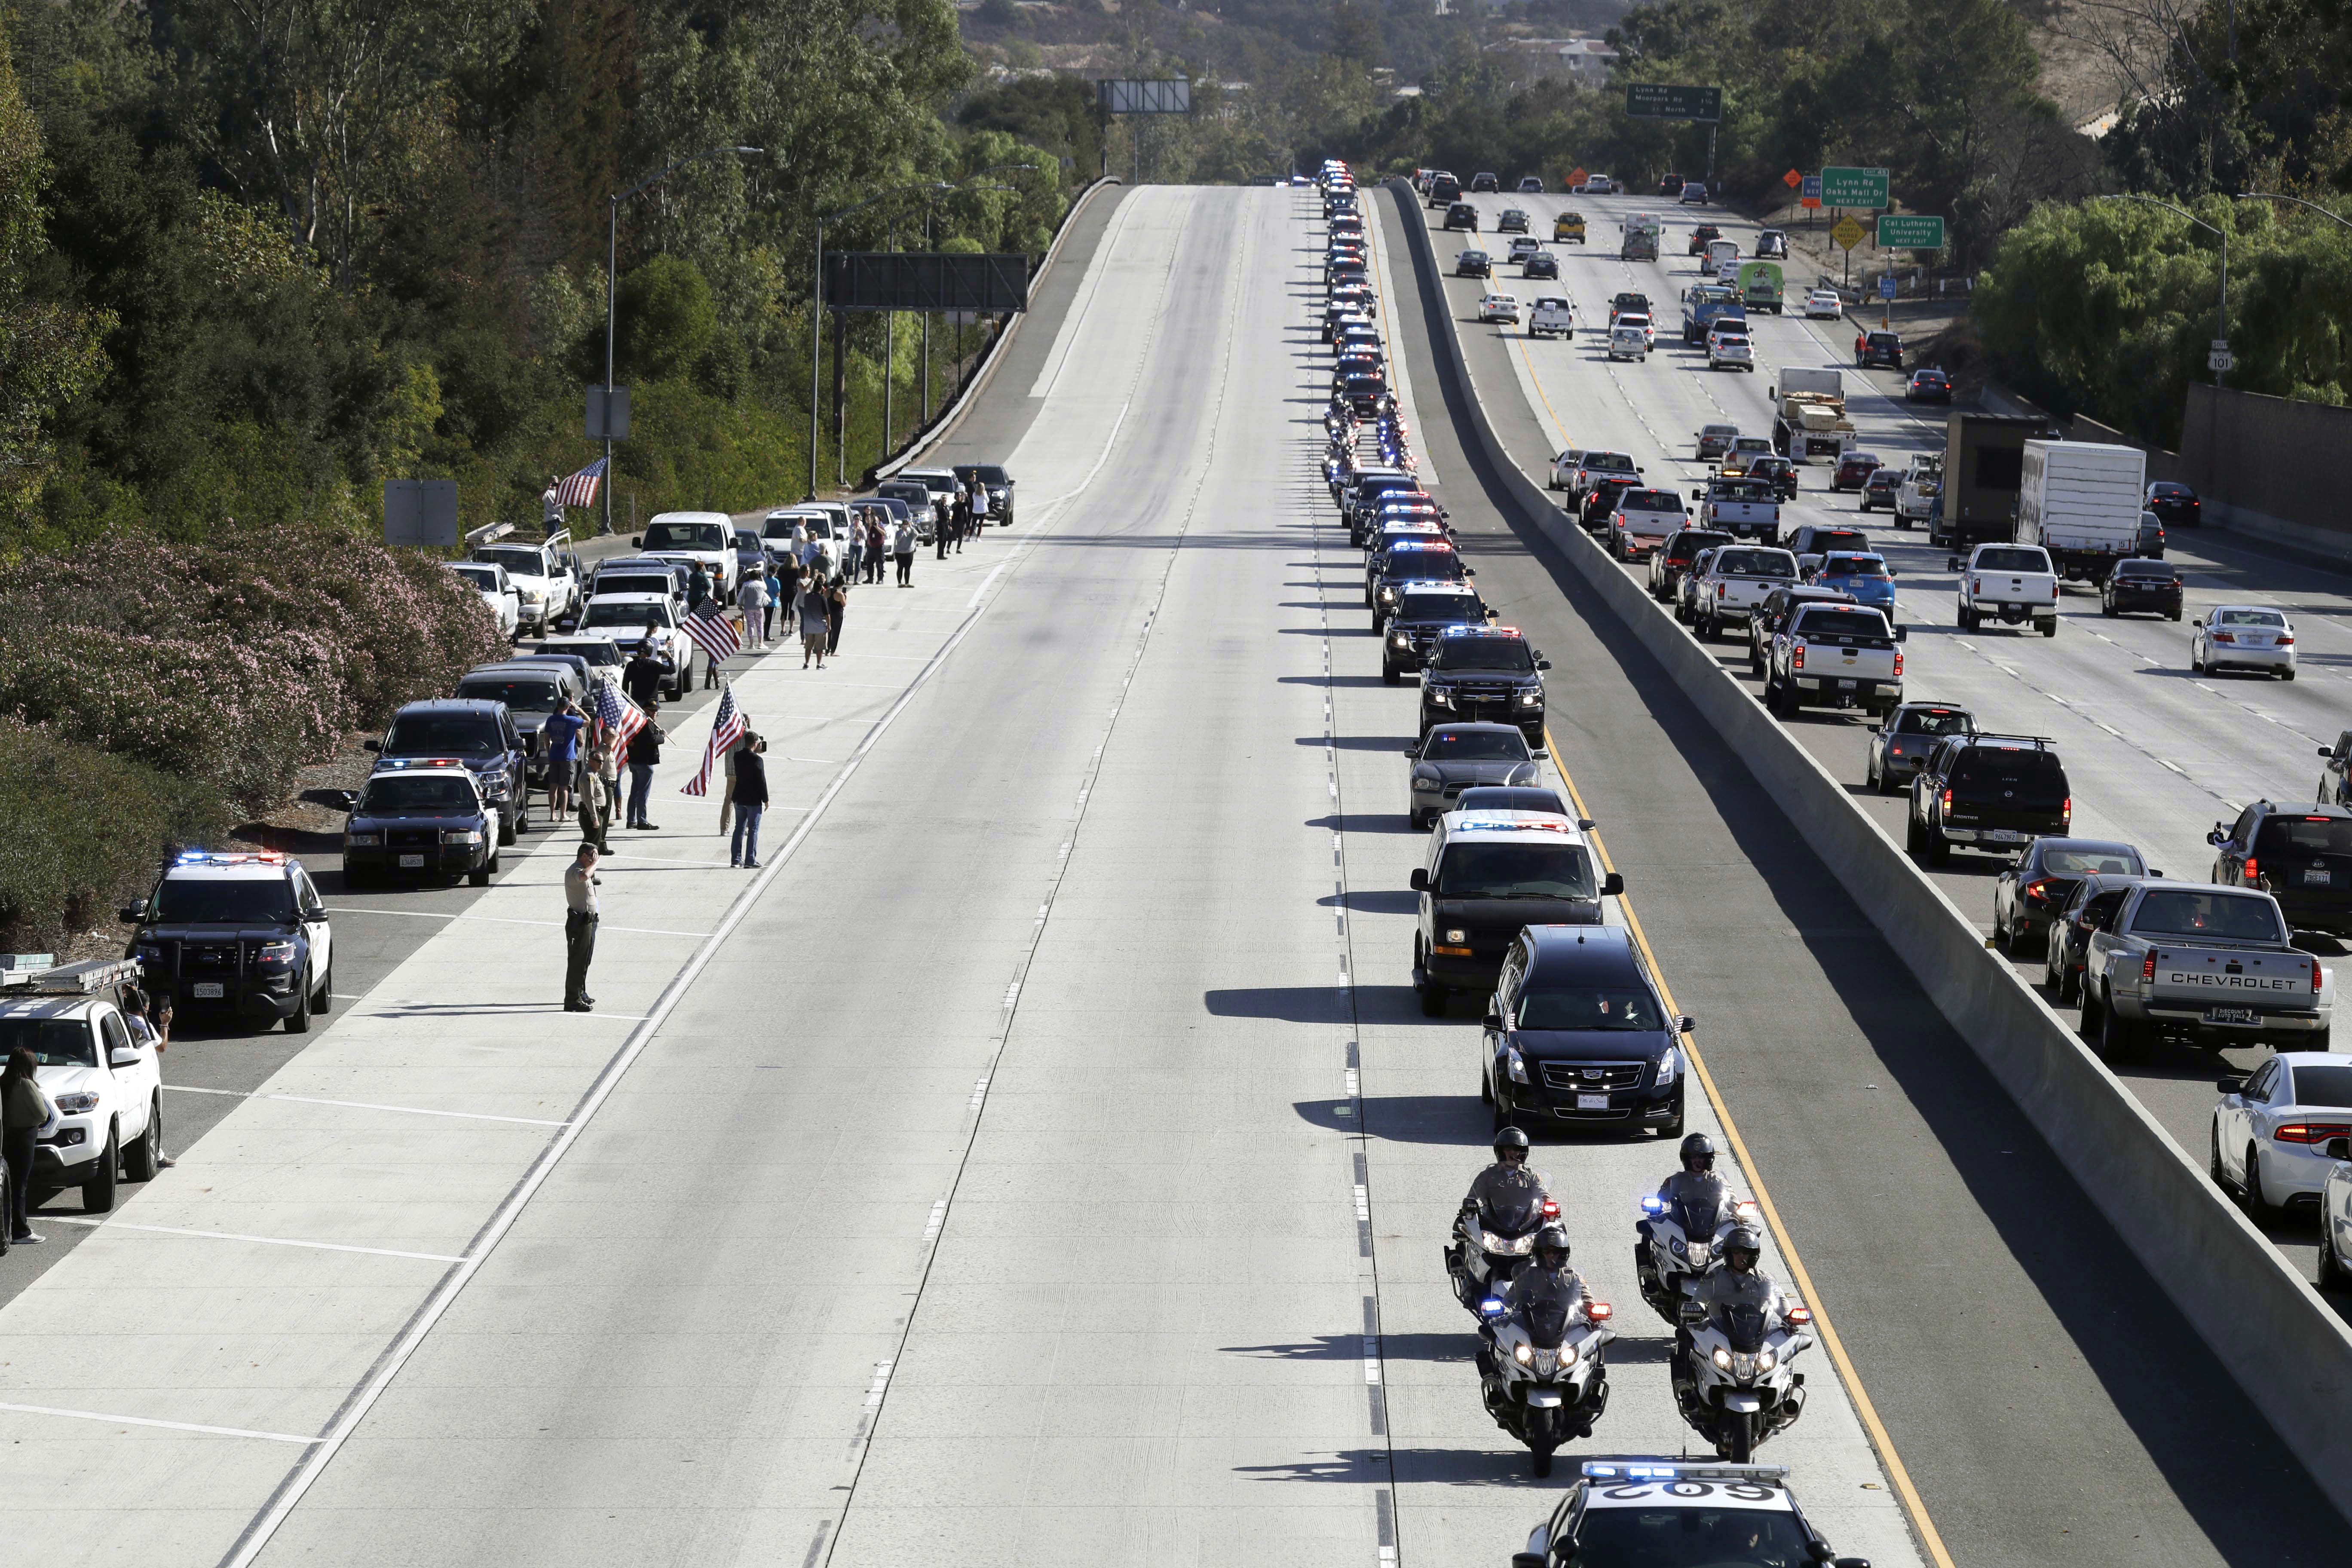 <p>A law enforcement motorcade, providing an escort for a hearse carrying the body of Ventura County Sheriff's Sgt. Ron Helus, makes its way northbound on Highway 101 Thursday, Nov. 8, 2018, in Newbury Park, Calif. Helus was fatally shot while responding to a mass shooting at a country music bar in Southern California. (Photo: Marcio Jose Sanchez/AP) </p>